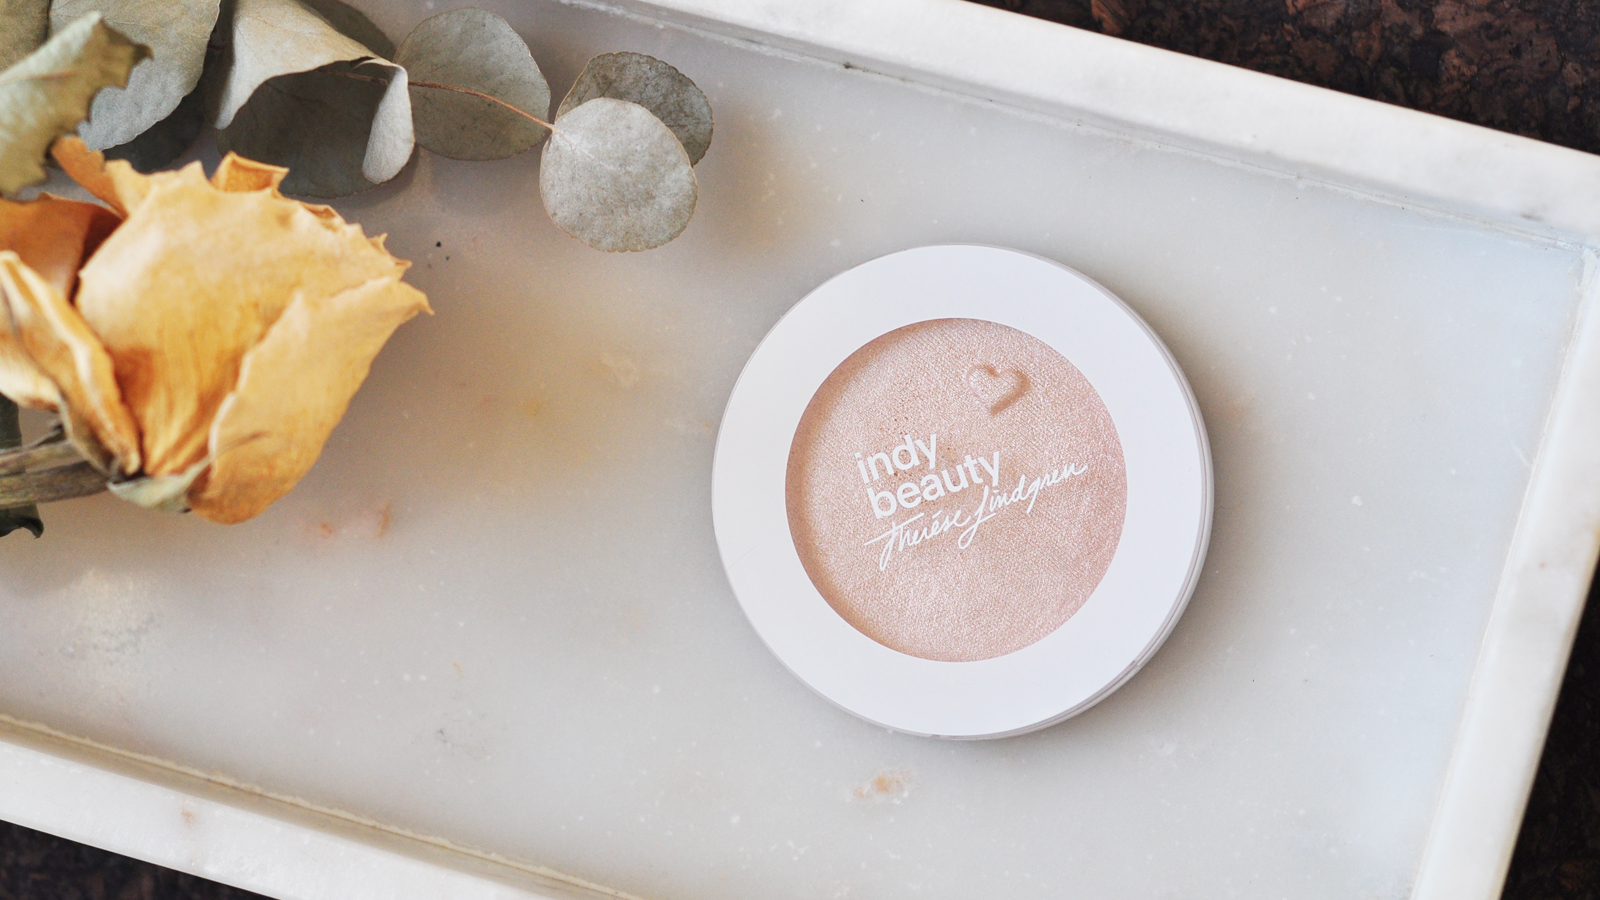 Indy Beauty highlighter